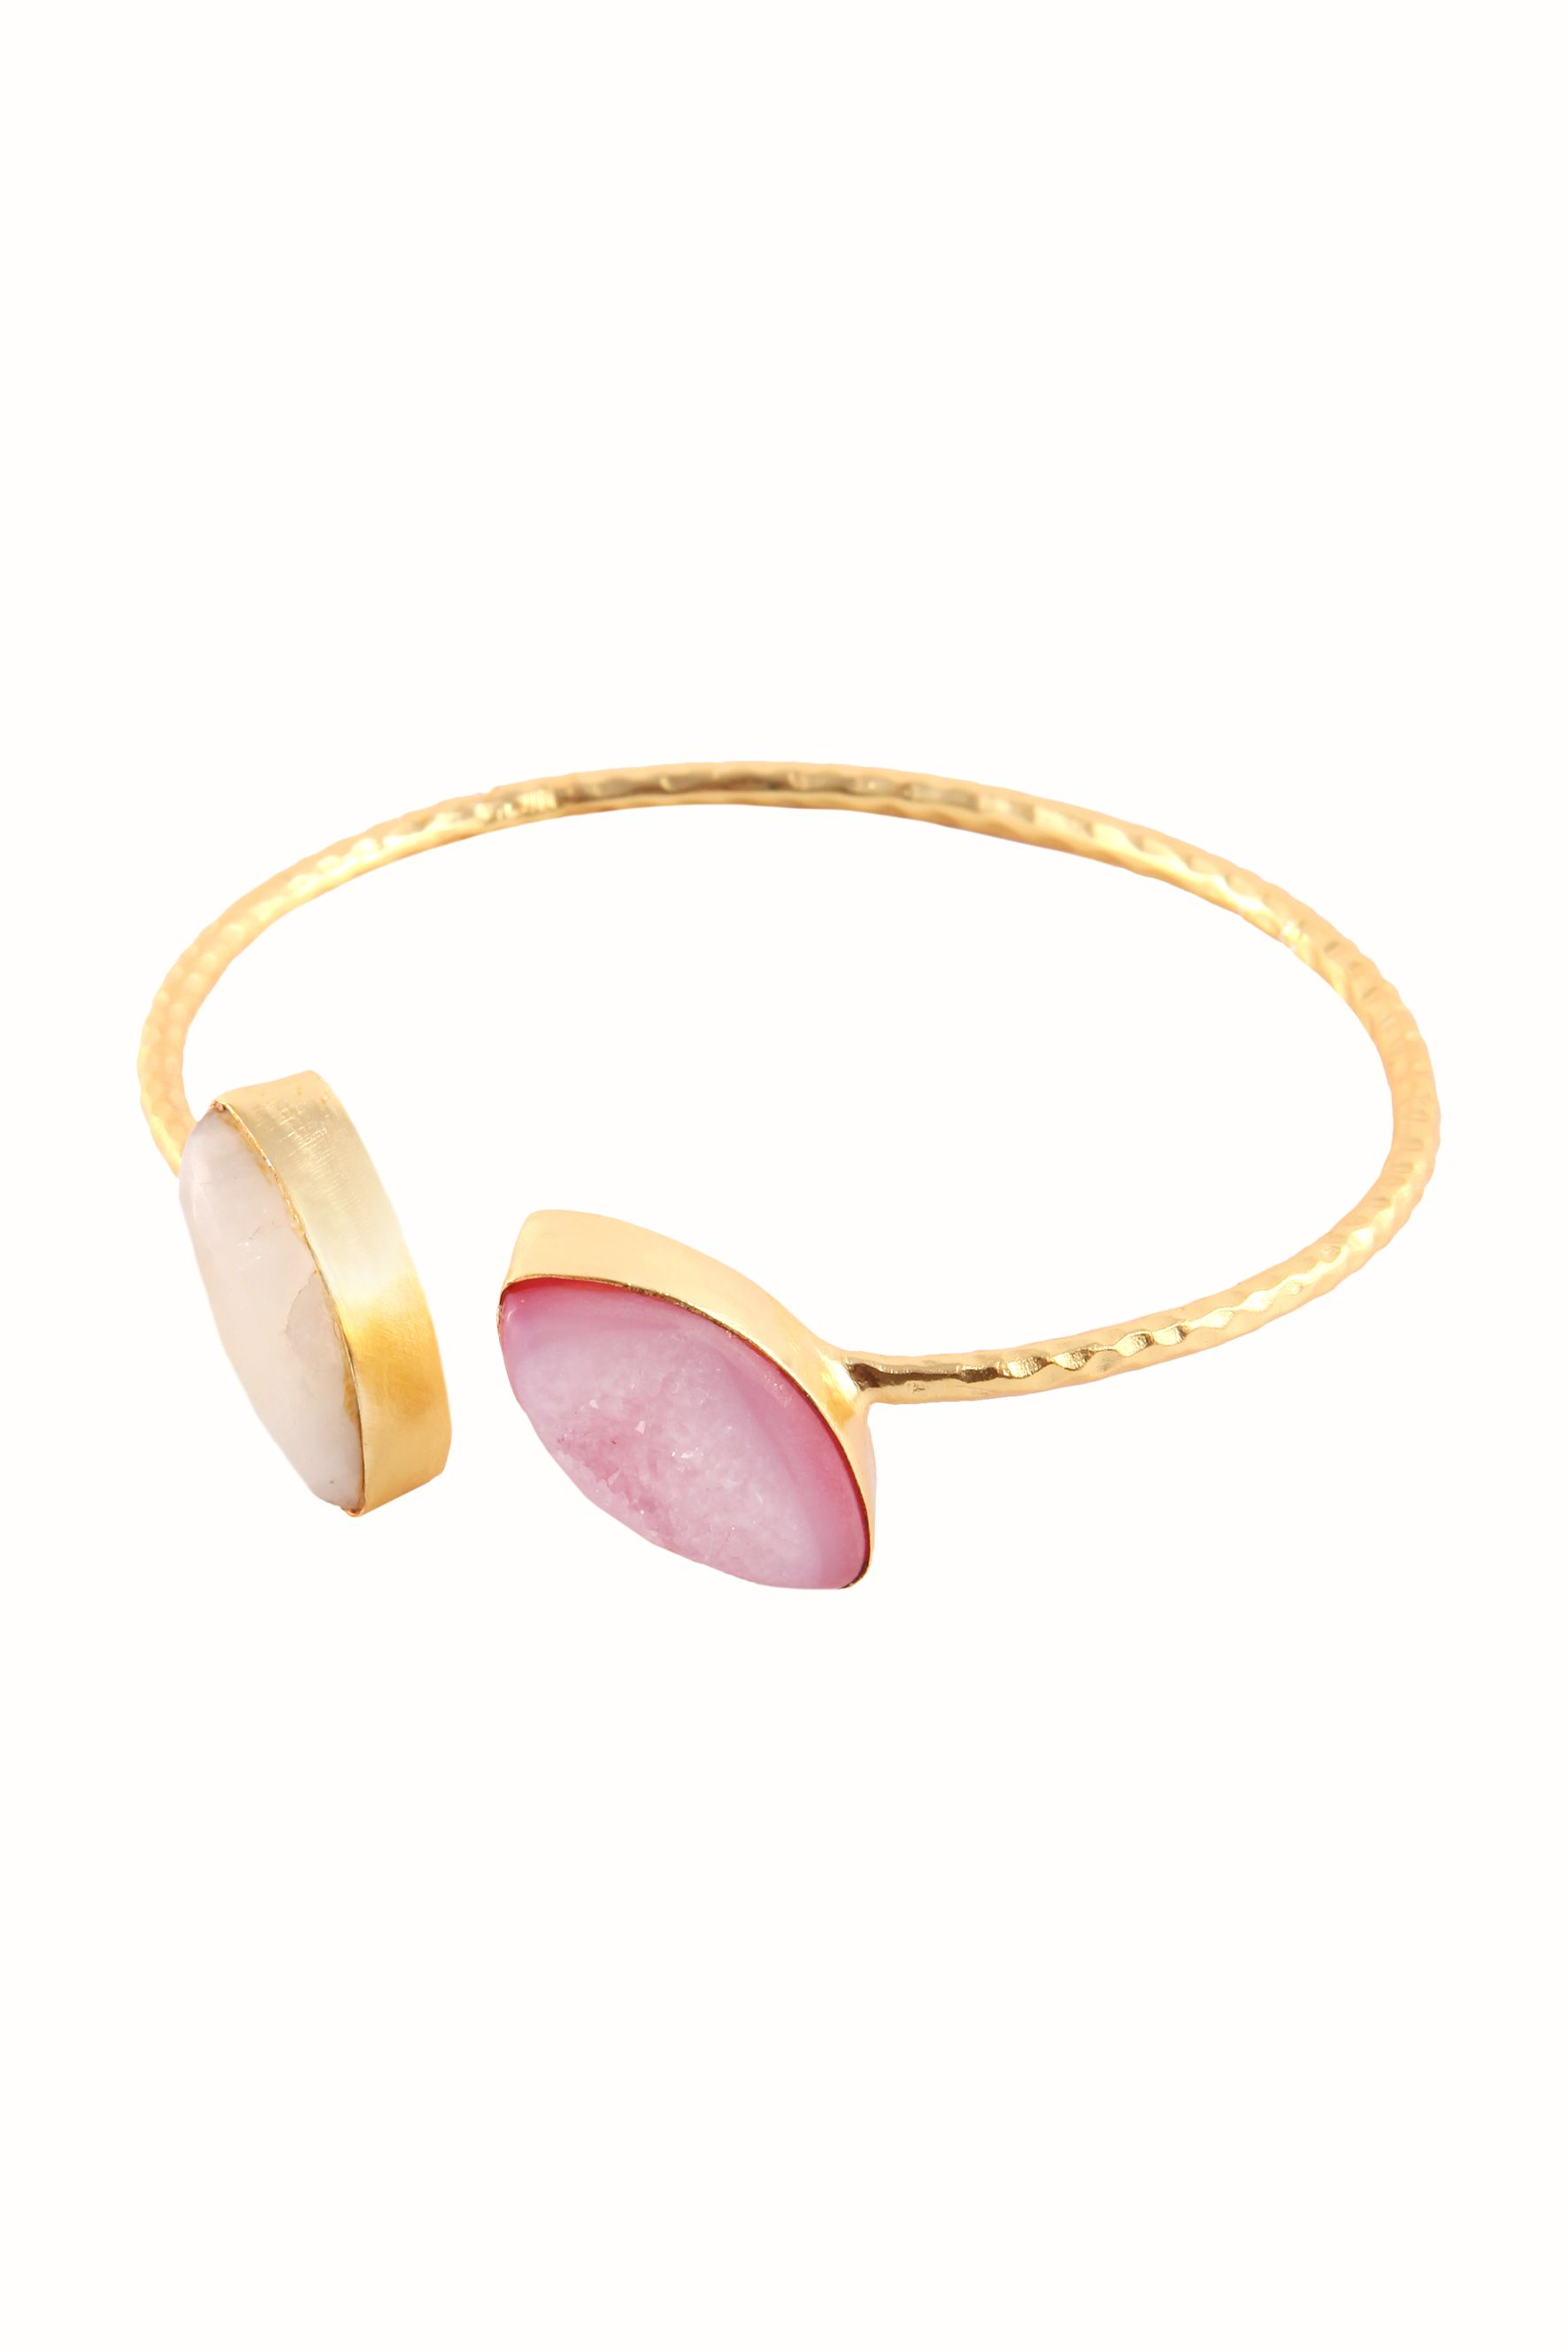 Simple bangle with natural stones.